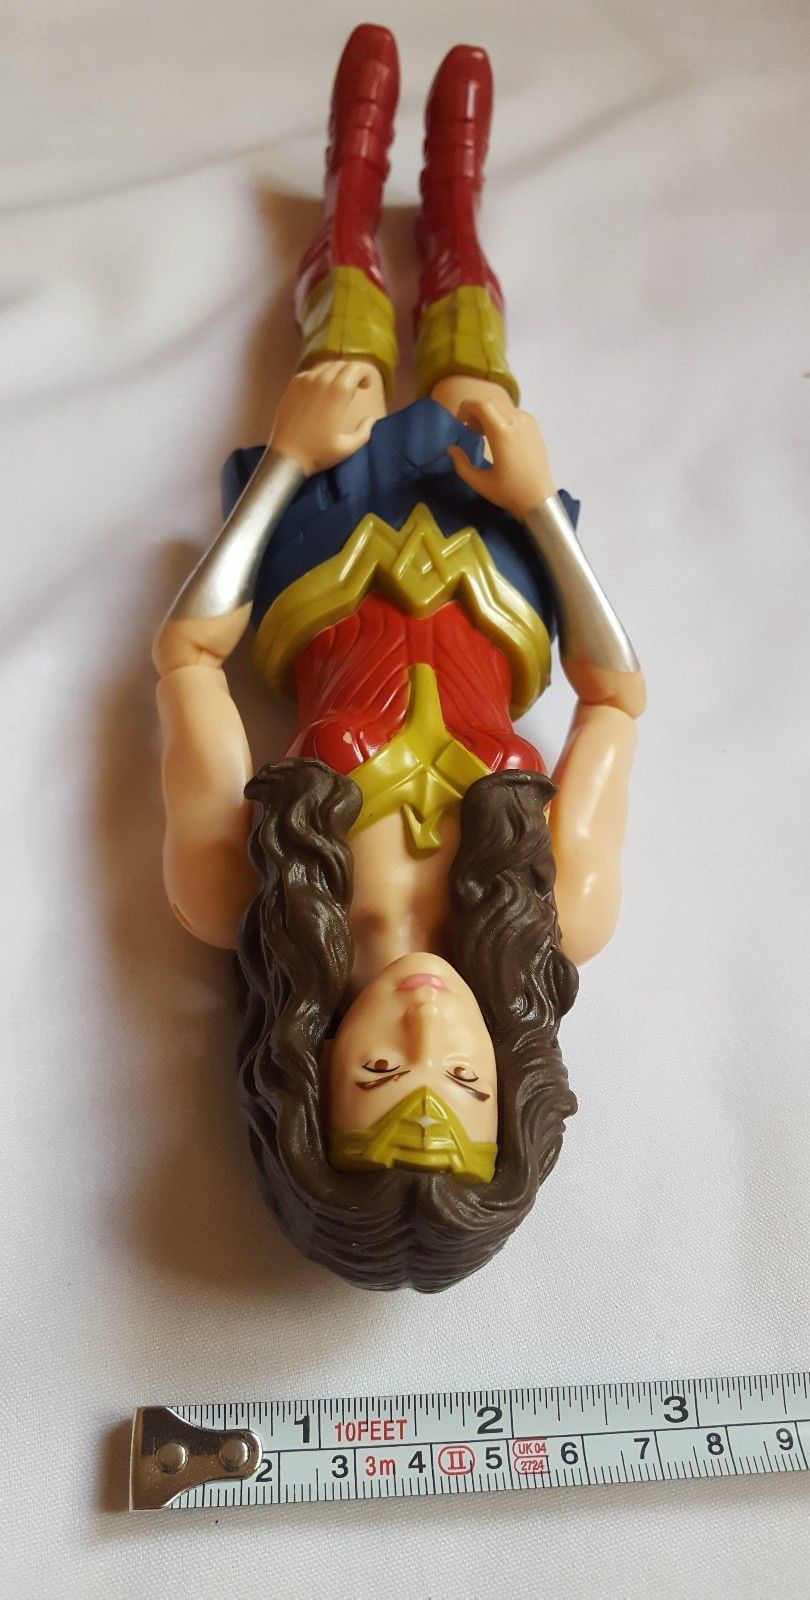 2015 Mattel DC Wonder Woman Doll kids toy pre-owned hard plastic 12""